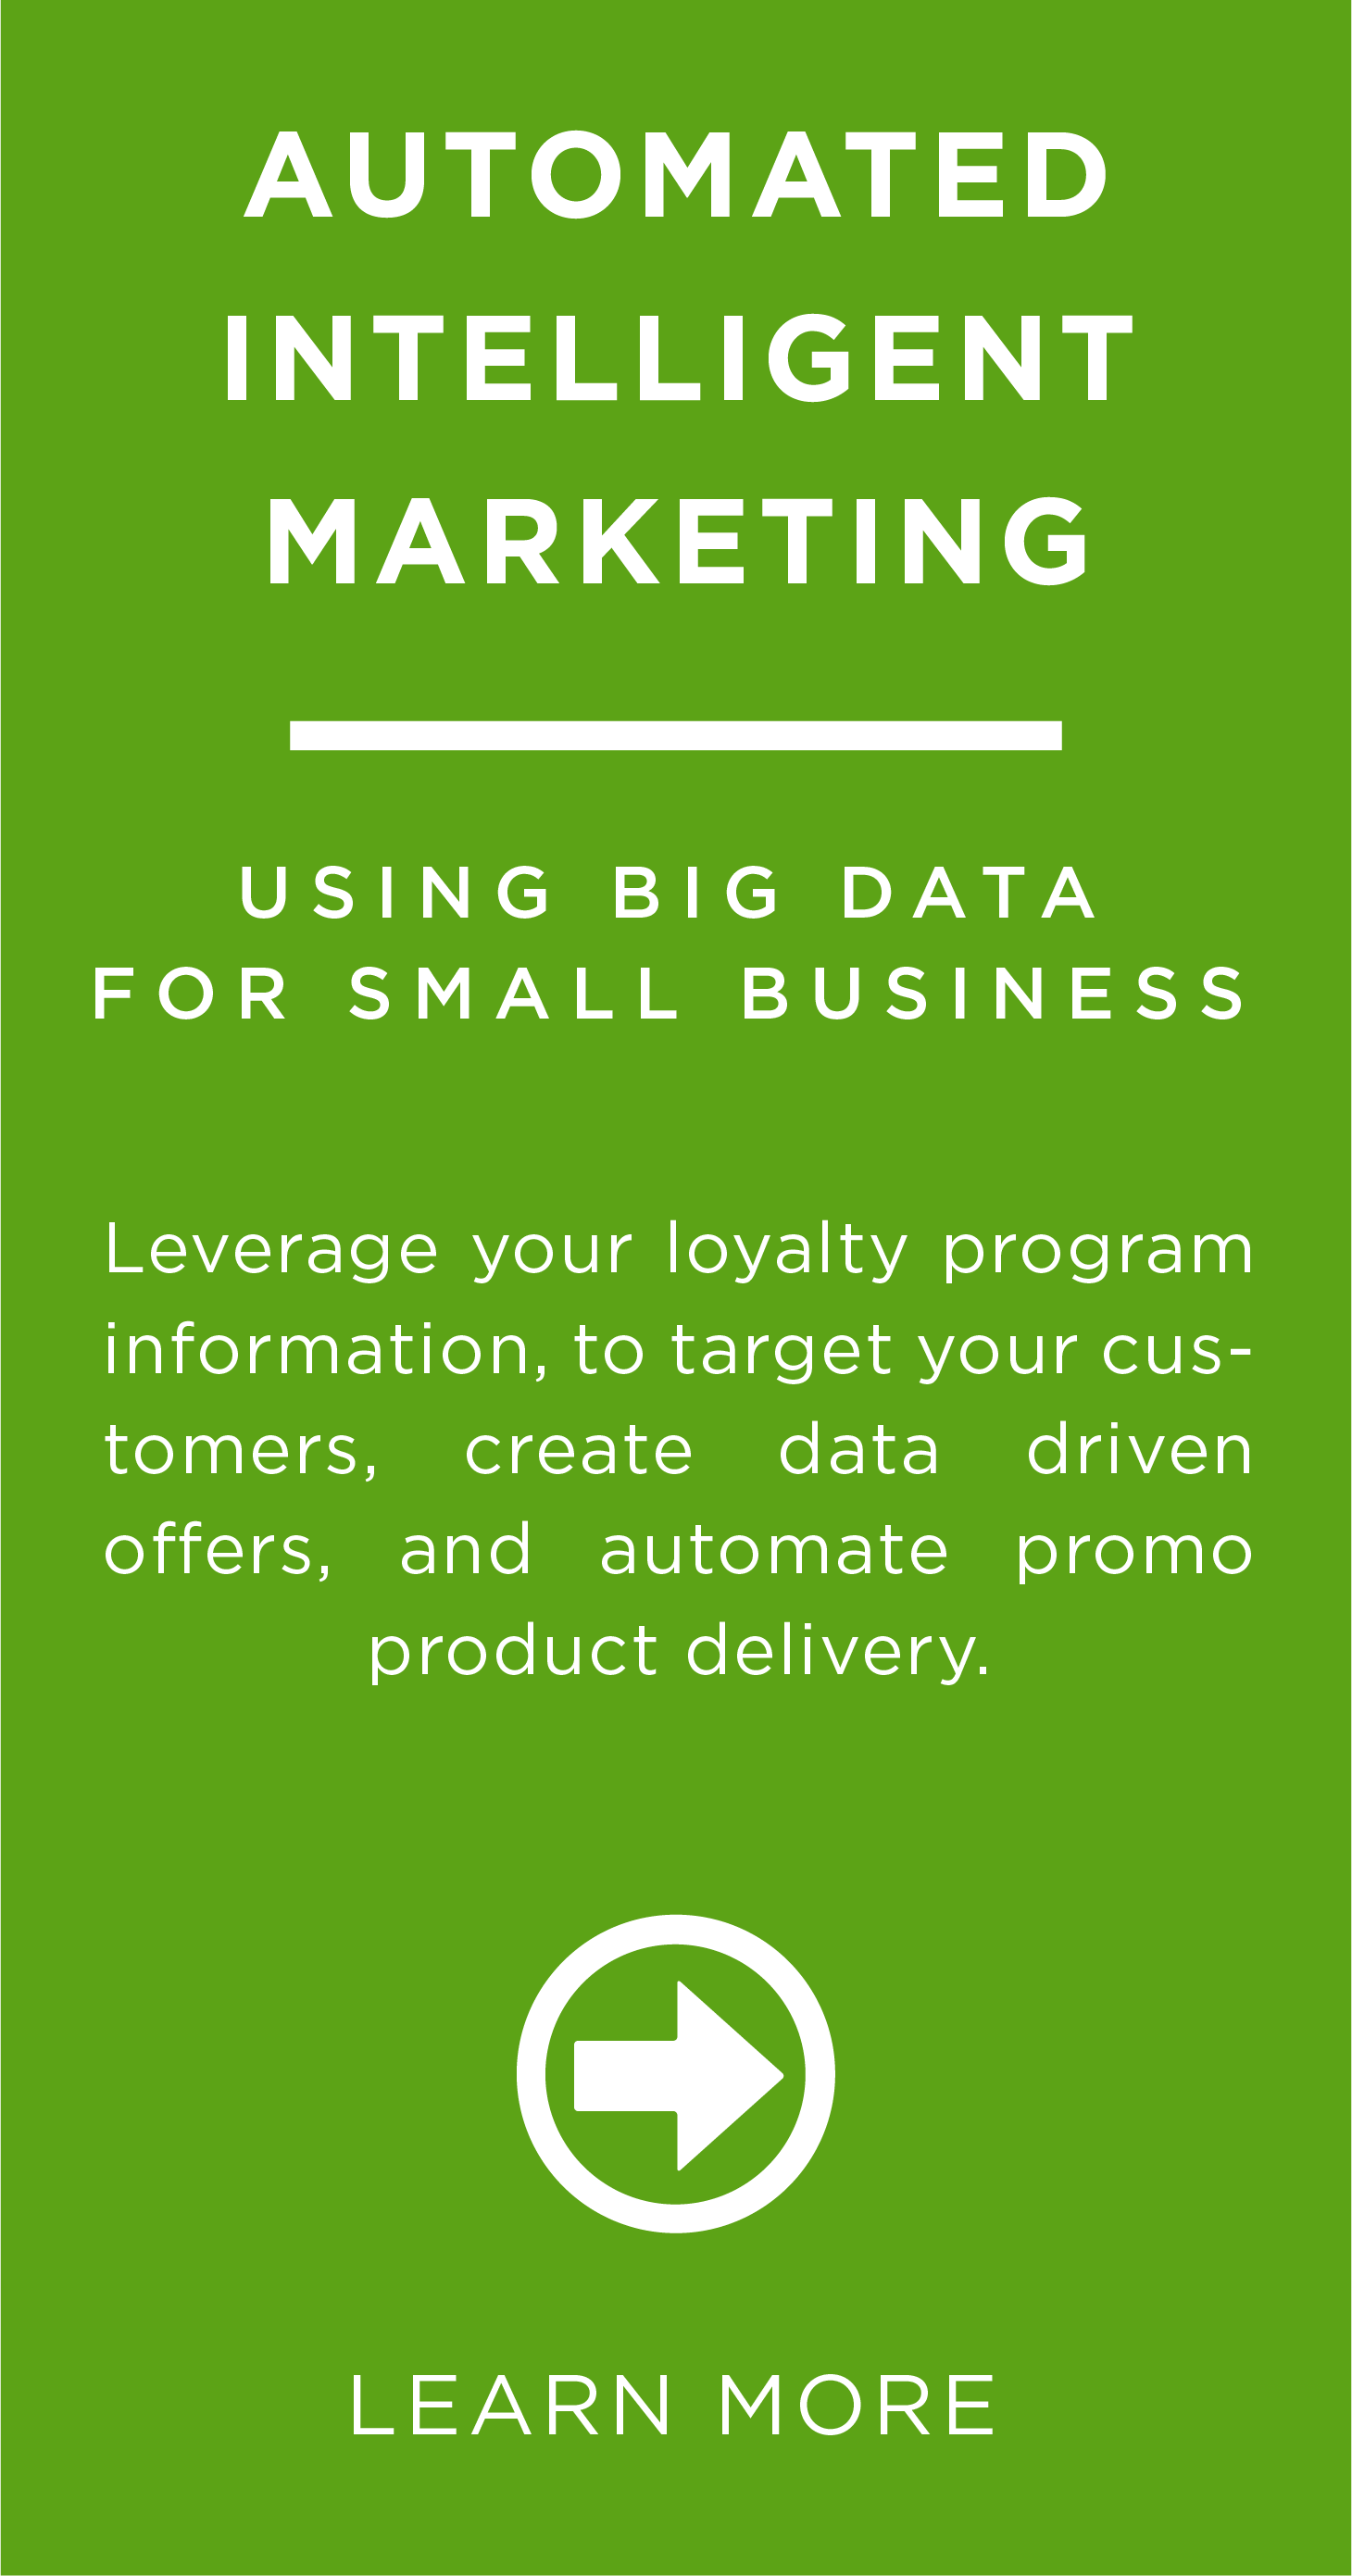 Leverage your loyalty program information to target your customers, create data driven offers, and automate promo product delivery.